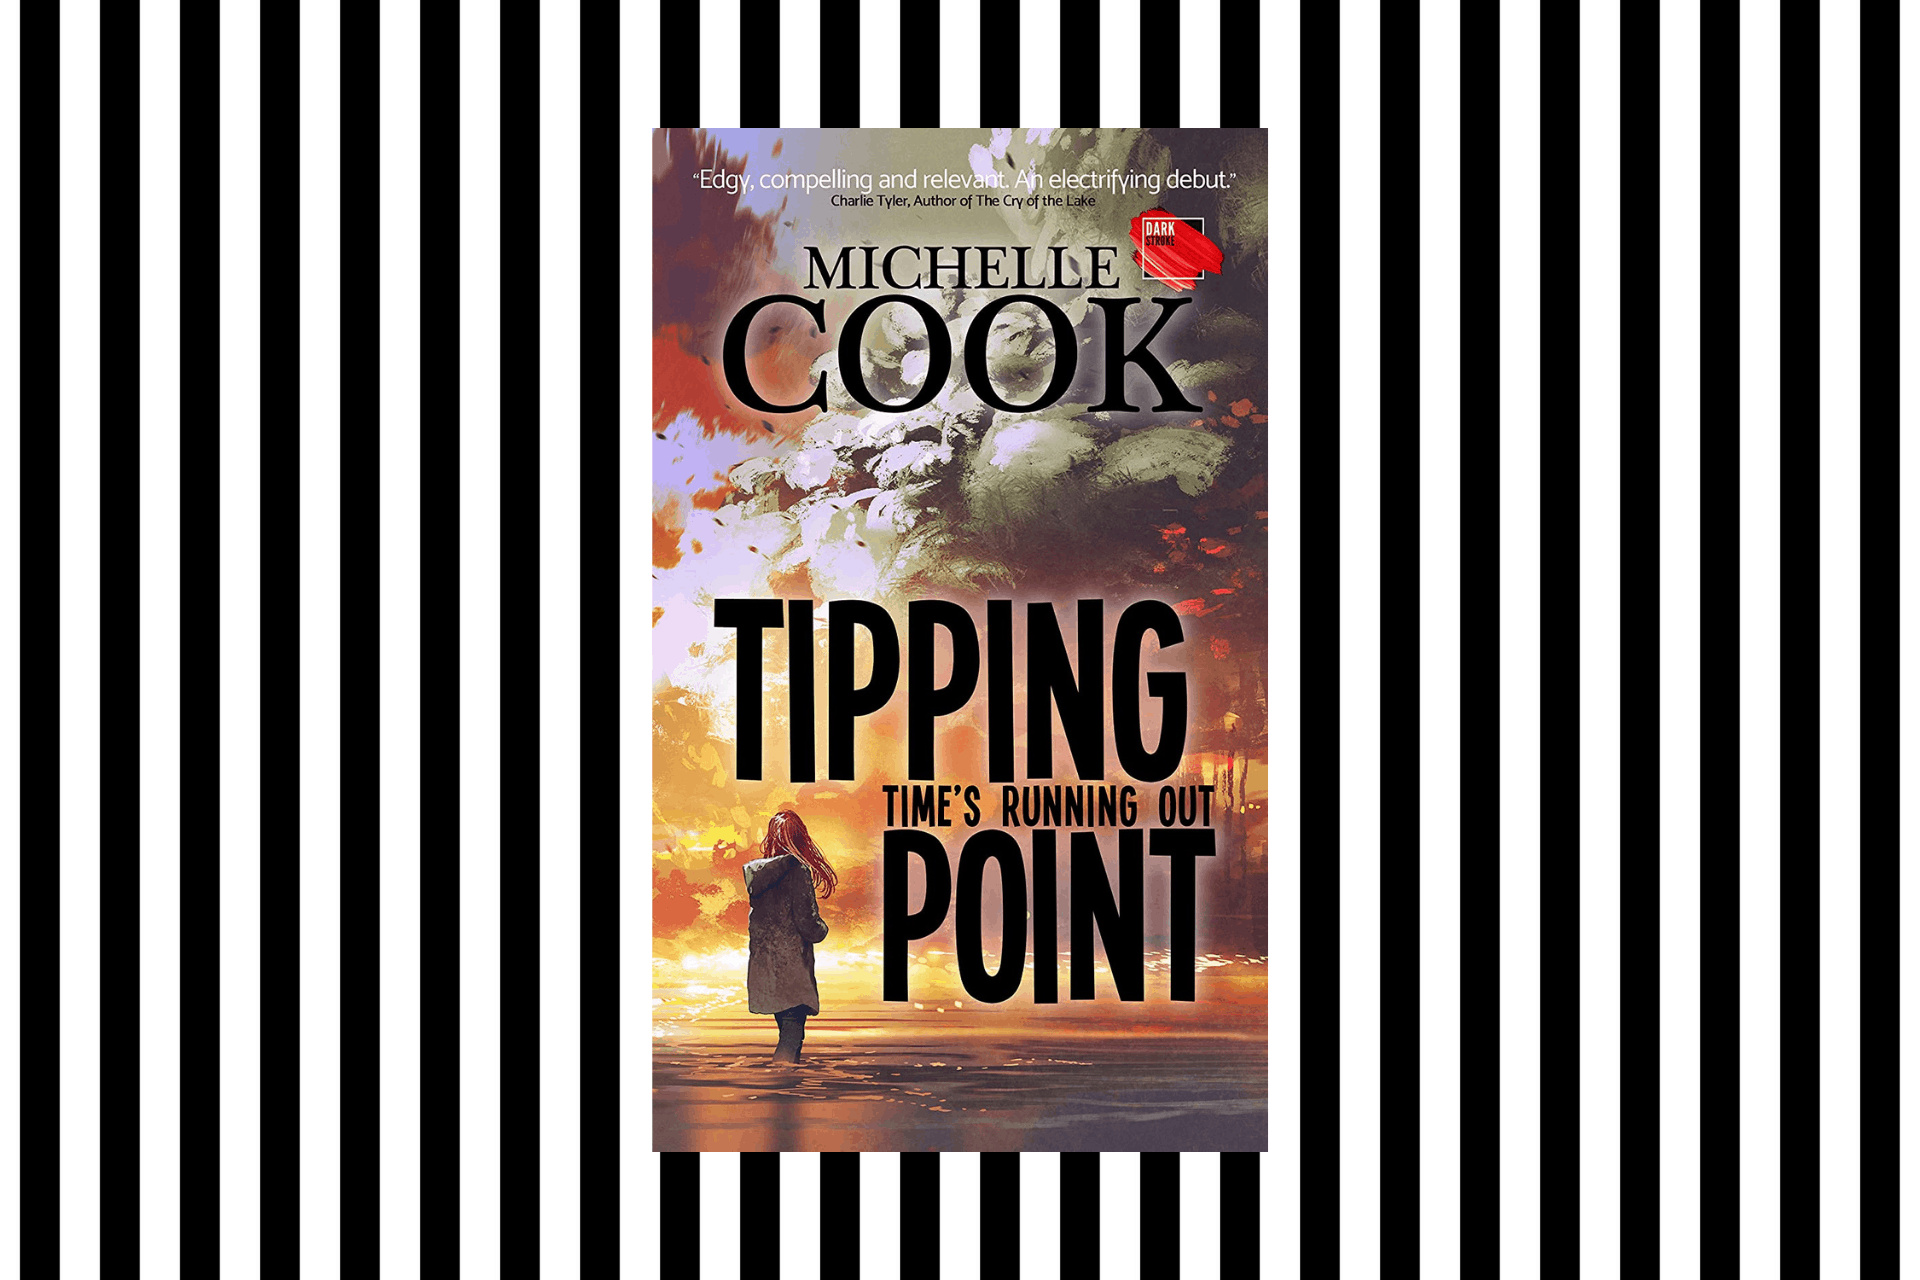 The cover of Tipping Point by Michelle Cook